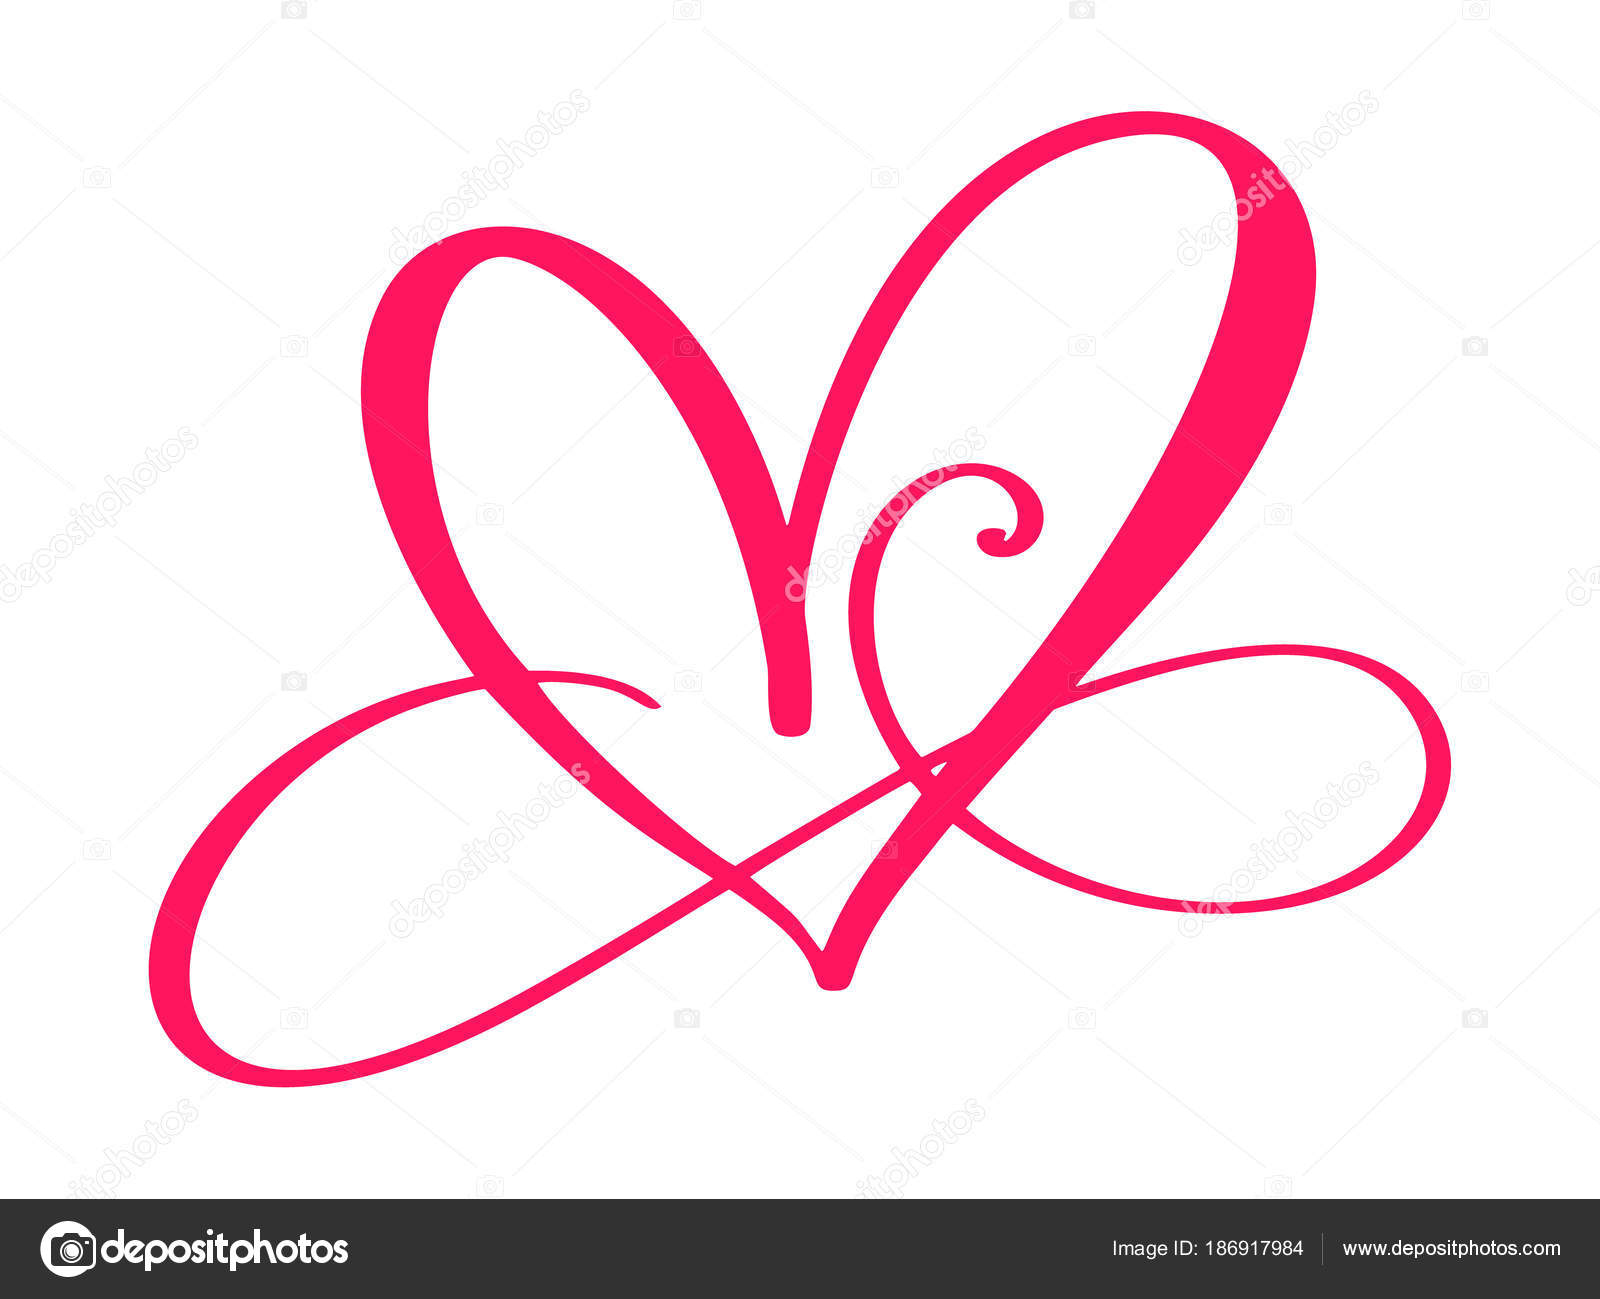 and depositphotos romantic forever illustration sign symbol wedding love passion join linked infinity heart stock